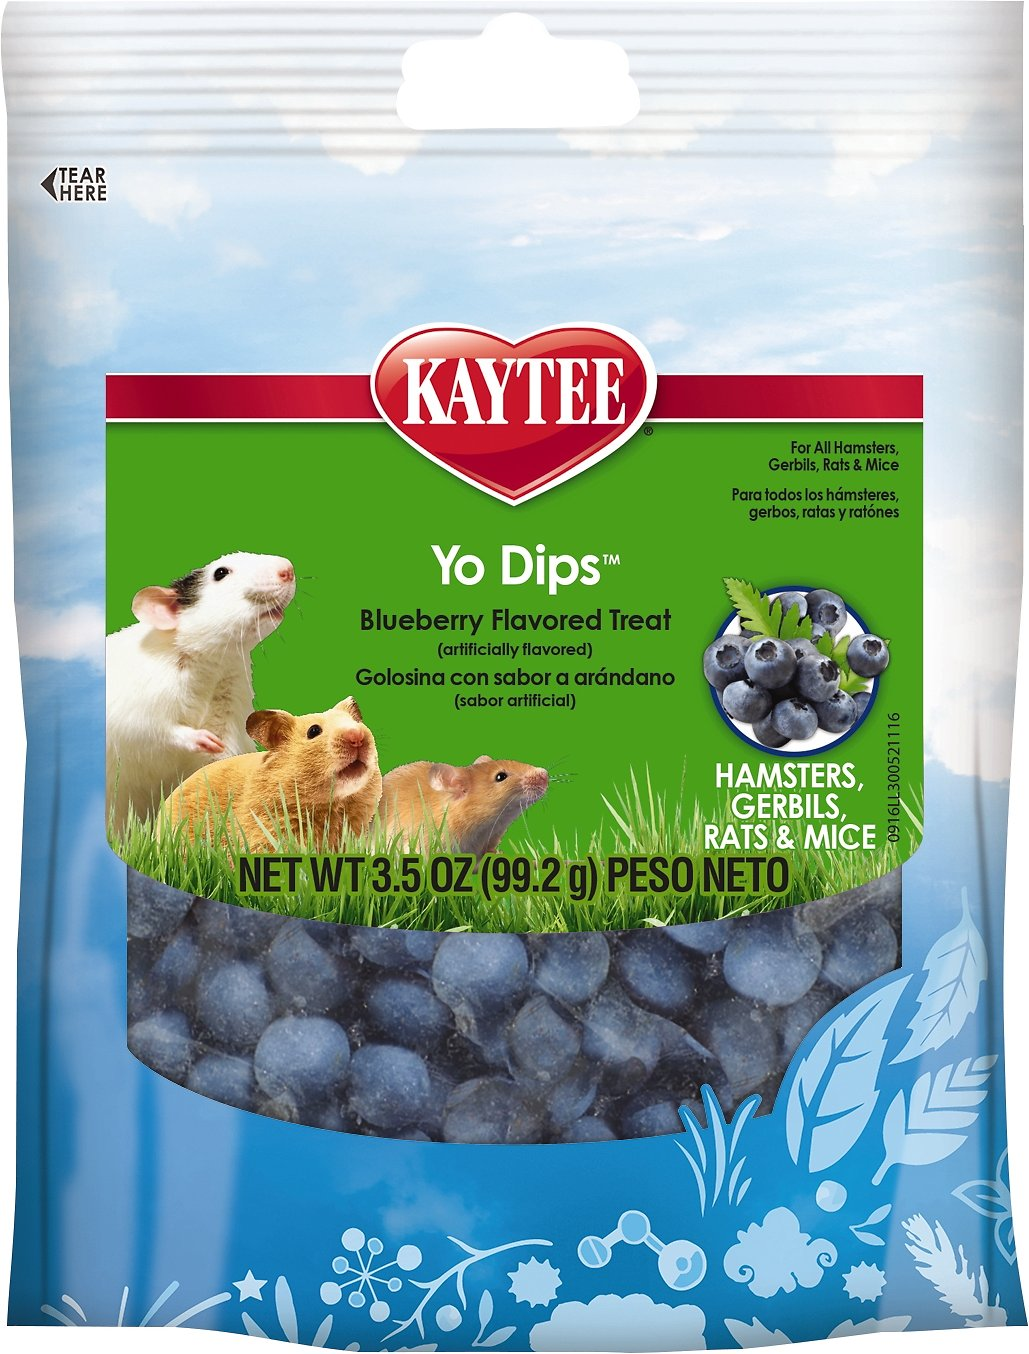 Kaytee Fiesta Blueberry Flavored Yogurt Dipped Hamster, Gerbil, Rat & Mouse Treats, 3.5-oz bag